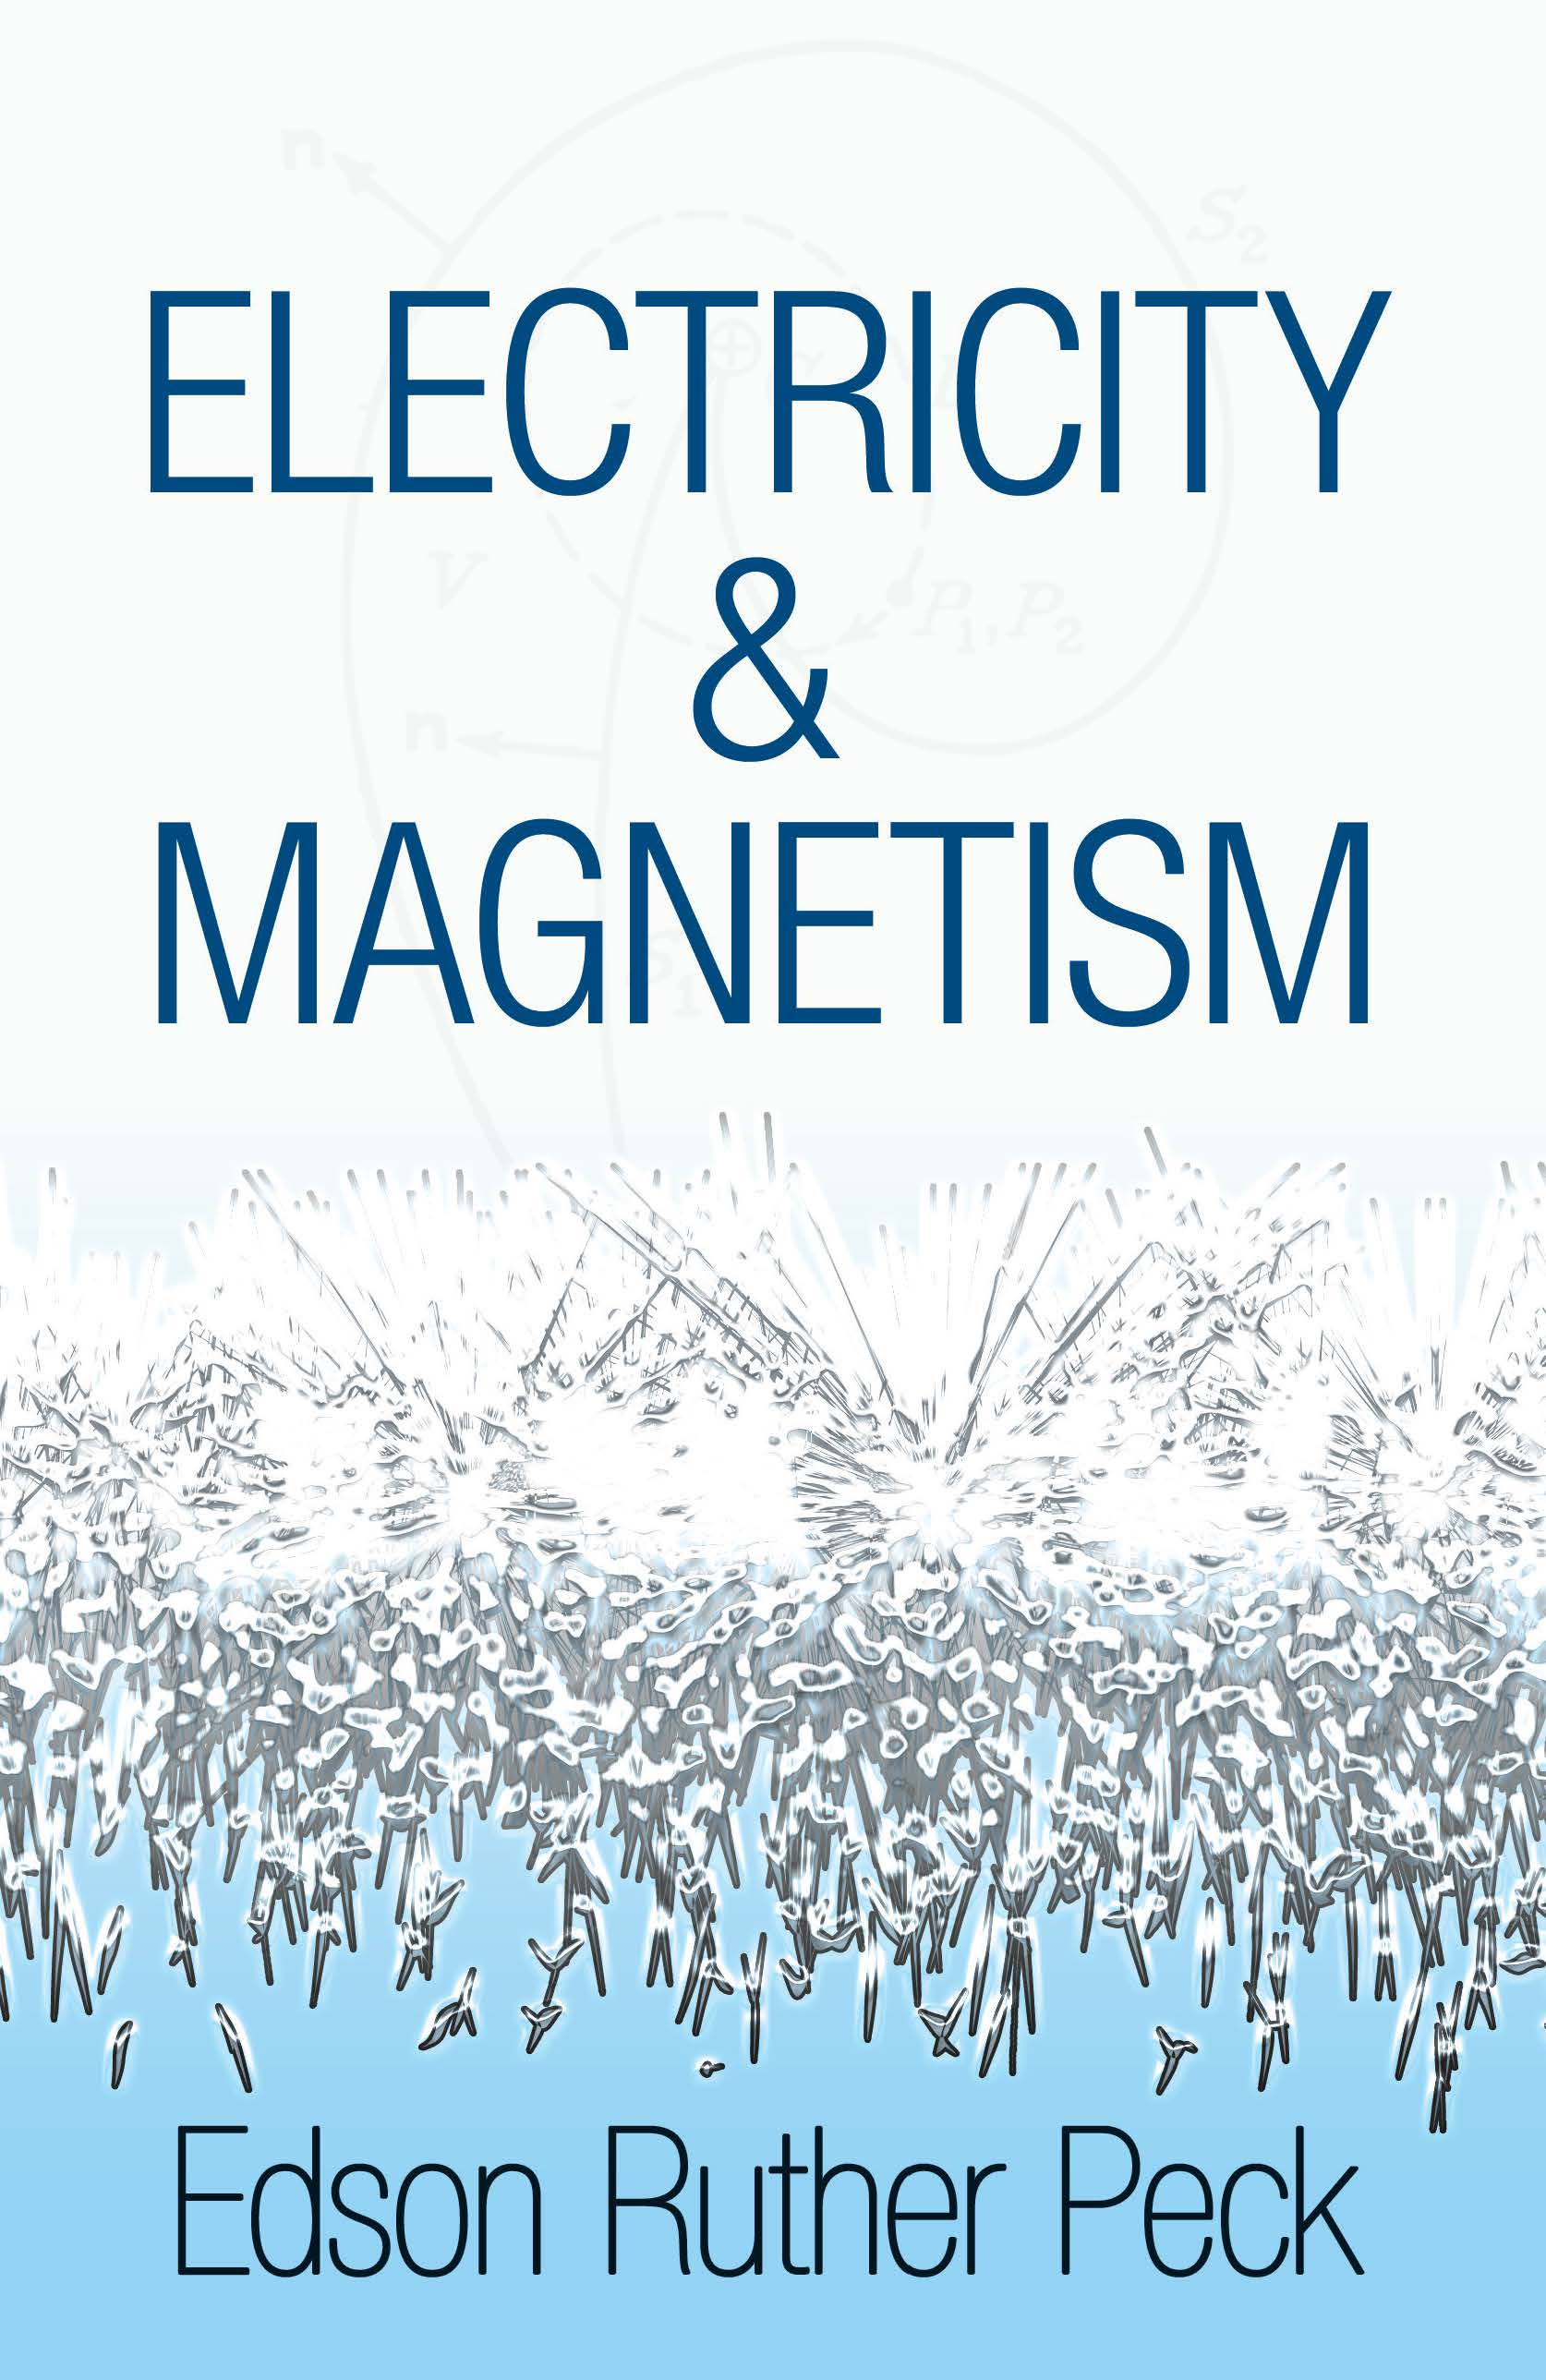 Electricity and Magnetism by Edson Ruther Peck   Read online   PDF